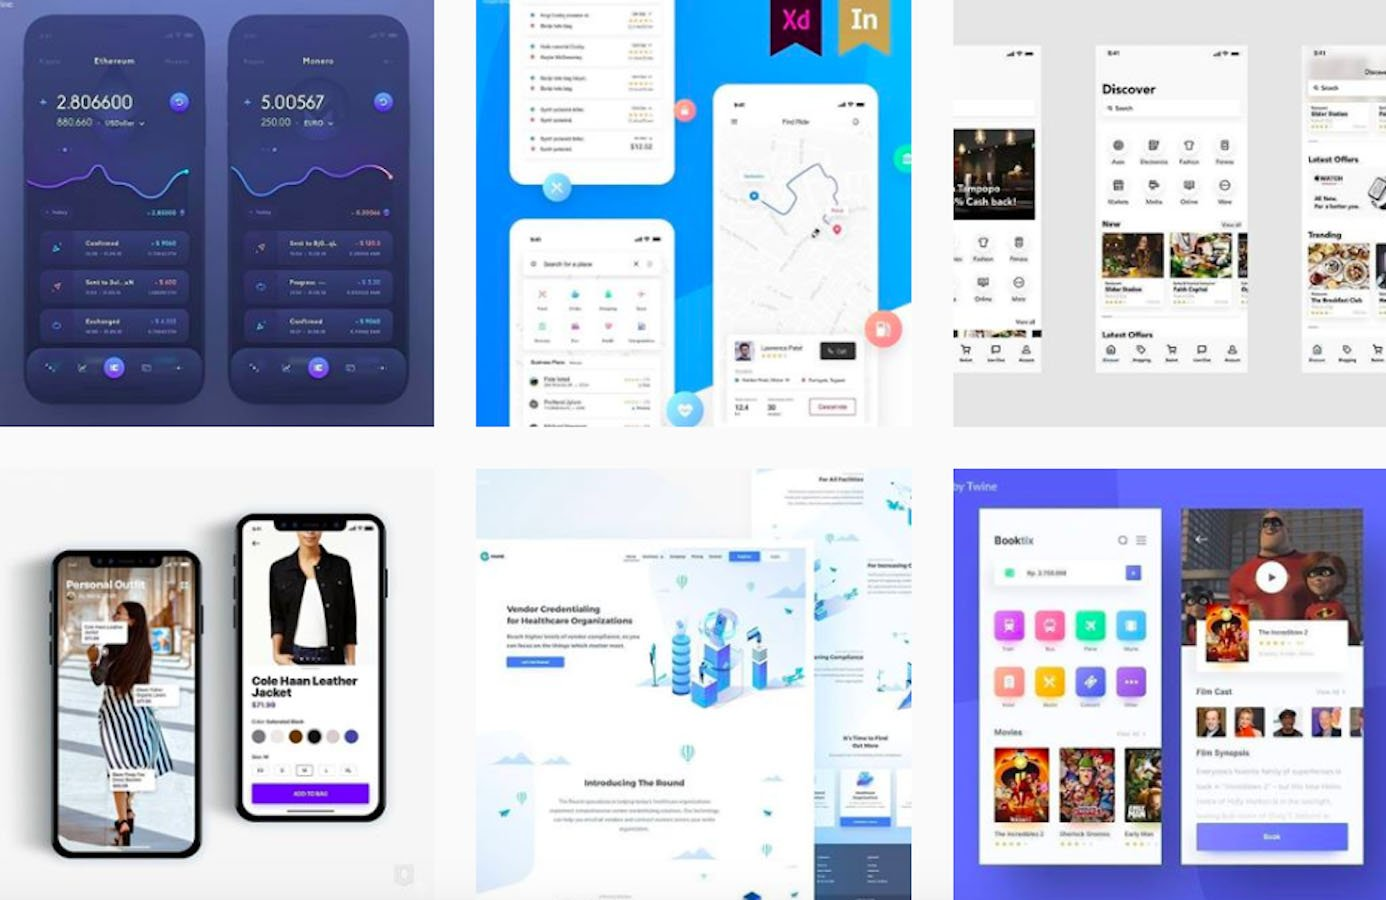 Web Design Inspiration: 110+ Accounts On Instagram and 10+ Best UX & Web Design Books in 2020 - twineuidesign